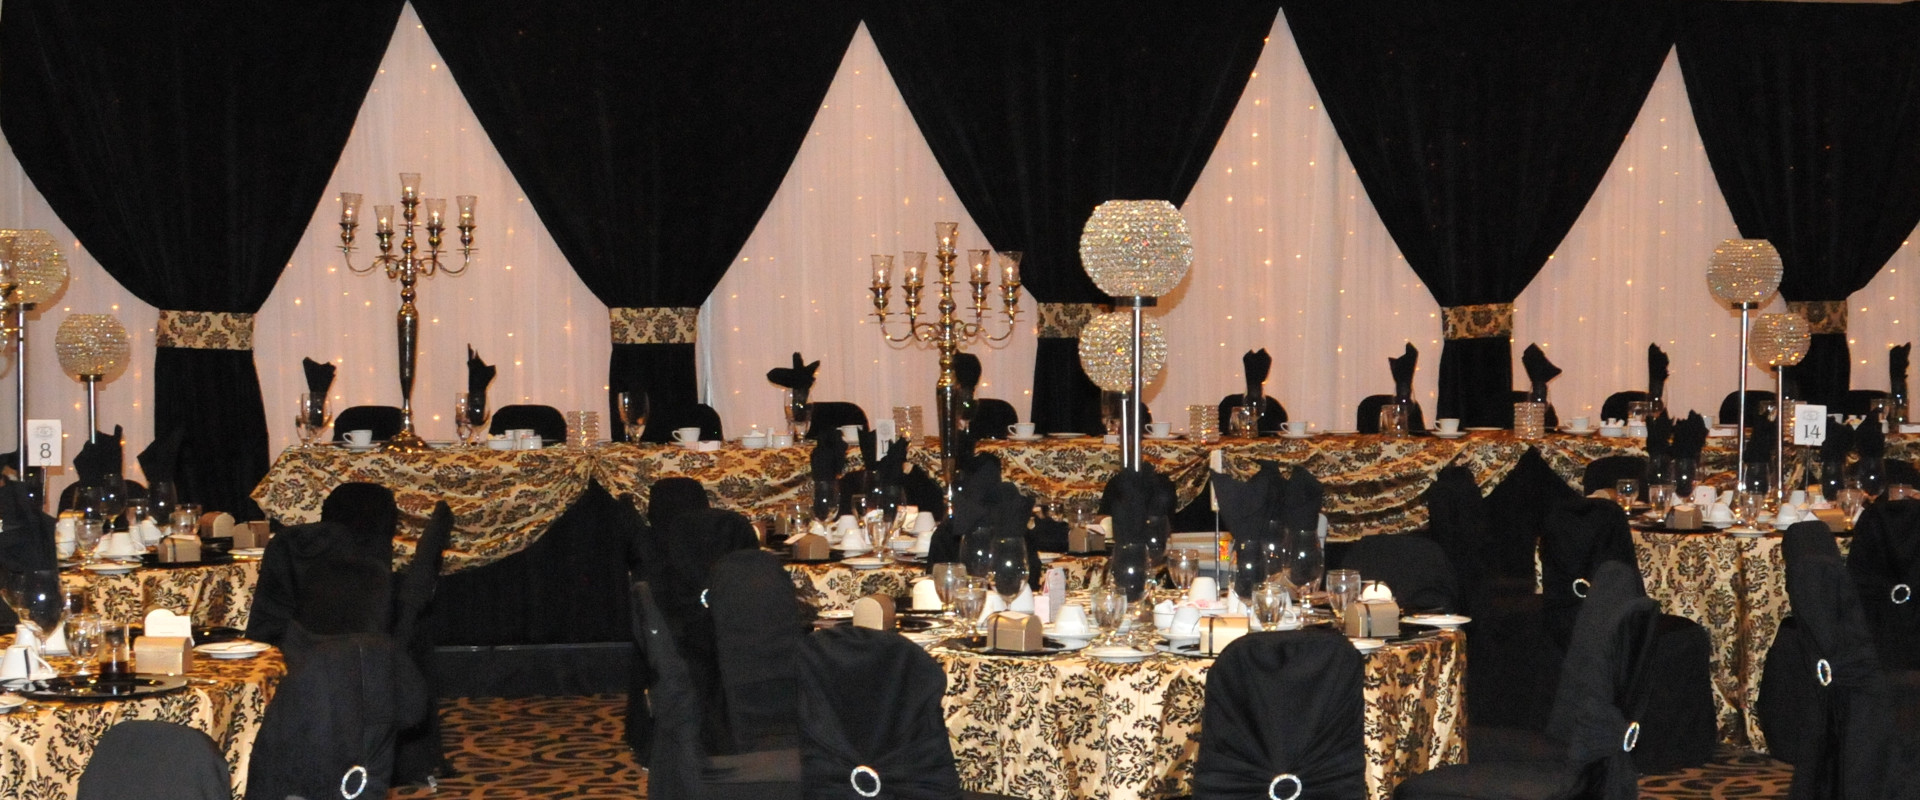 Event rentals in Sault Ste. Marie, North Bay, Manitoulin, Sudbury Ontario